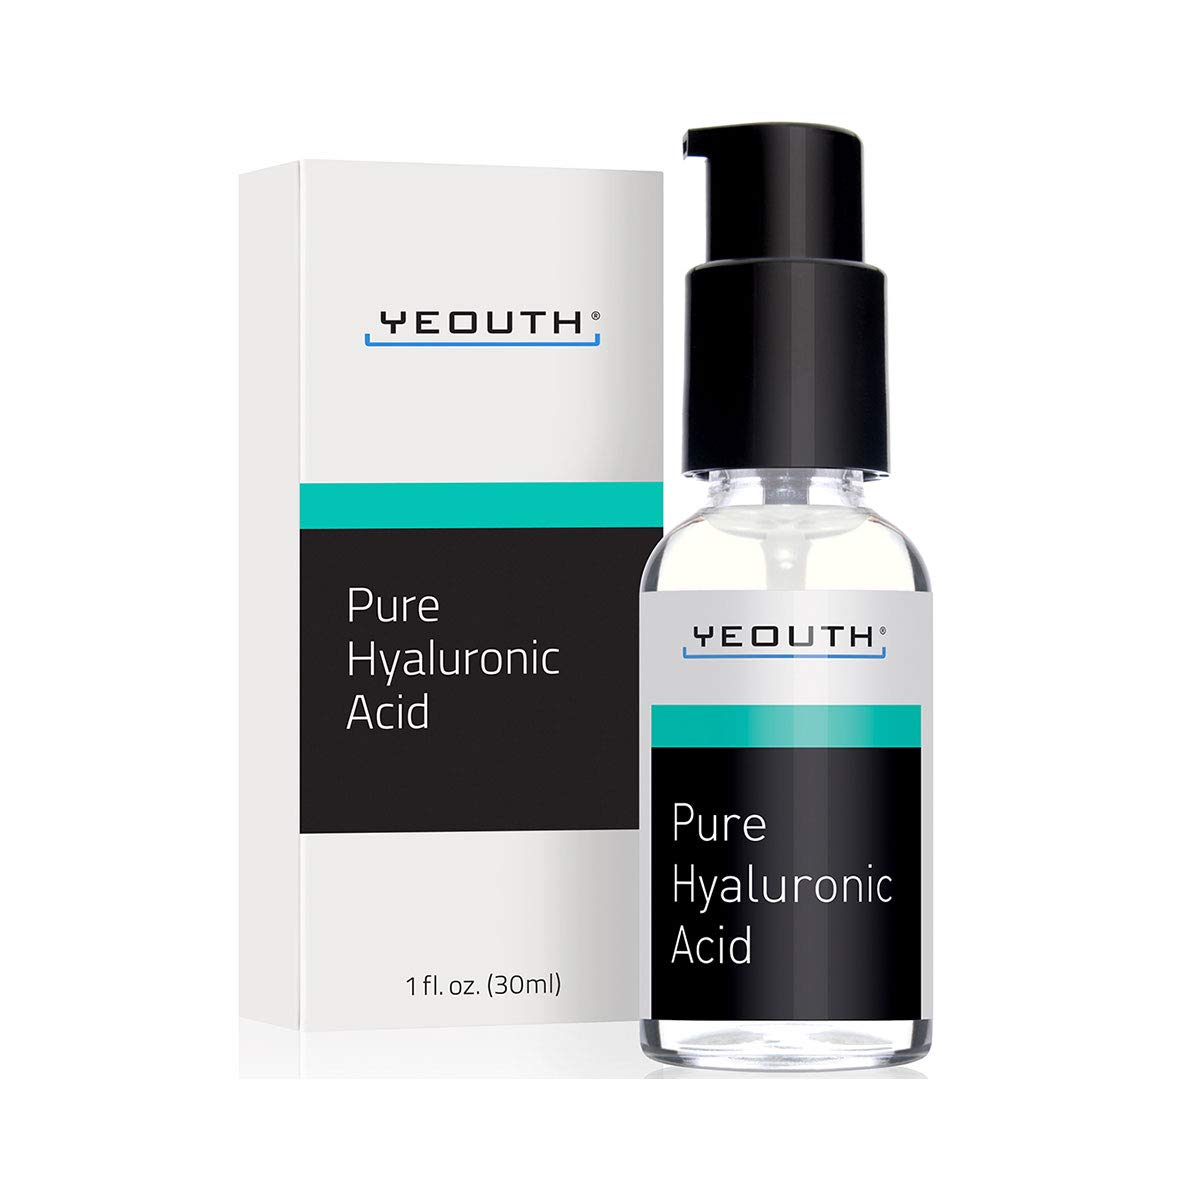 Top 10 Best Hyaluronic Acid Serum Reviews in 2020 1